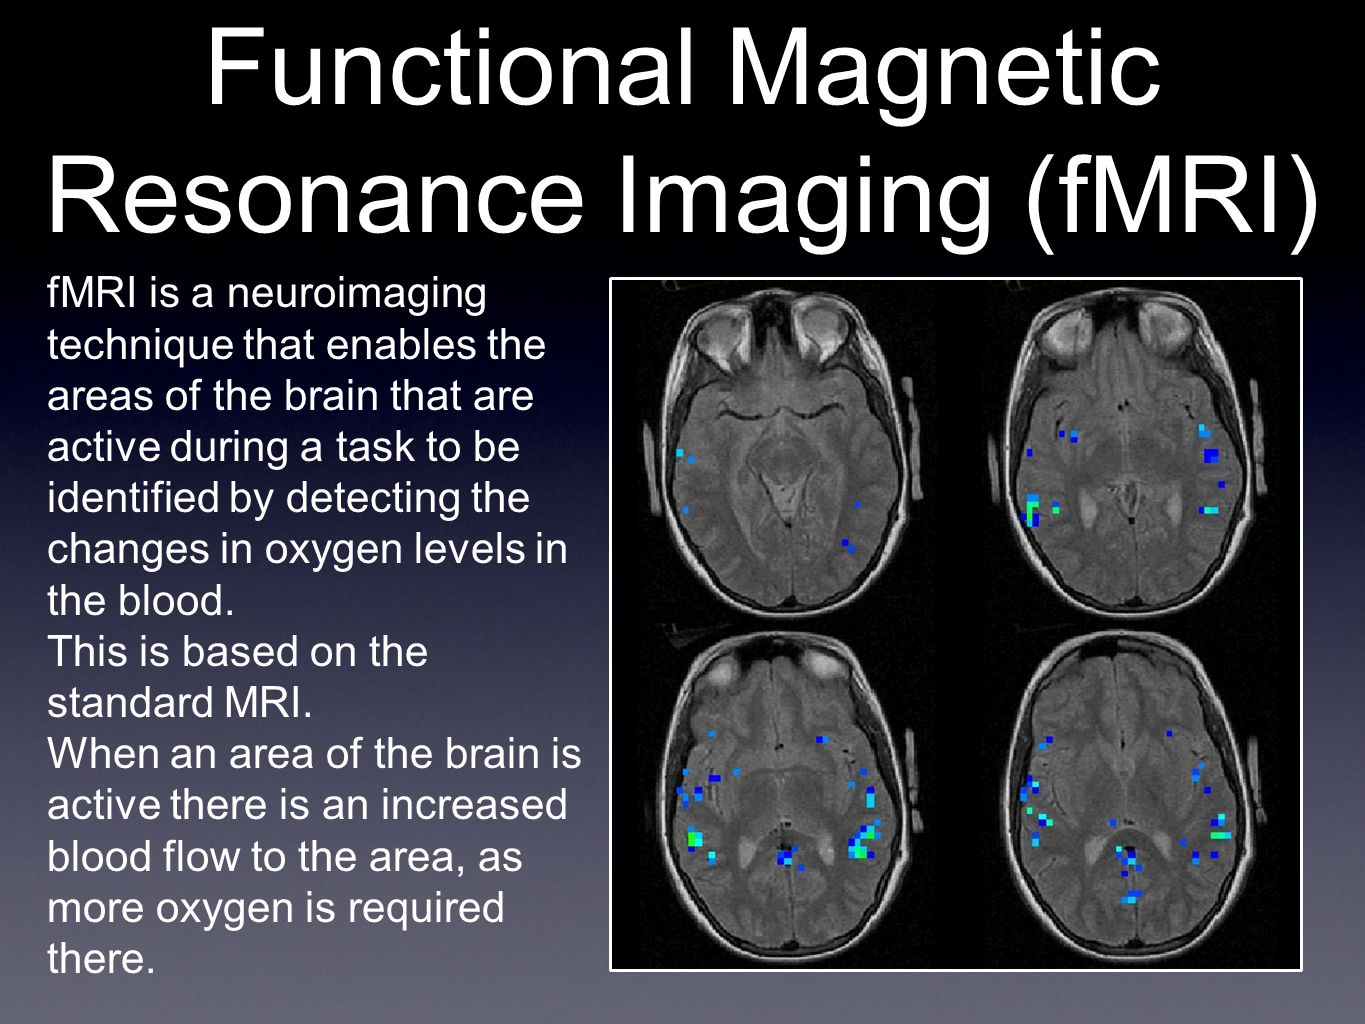 Functional Magnetic Resonance Imaging (fMRI) fMRI is a neuroimaging technique that enables the areas of the brain that are active during a task to be identified by detecting the changes in oxygen levels in the blood.